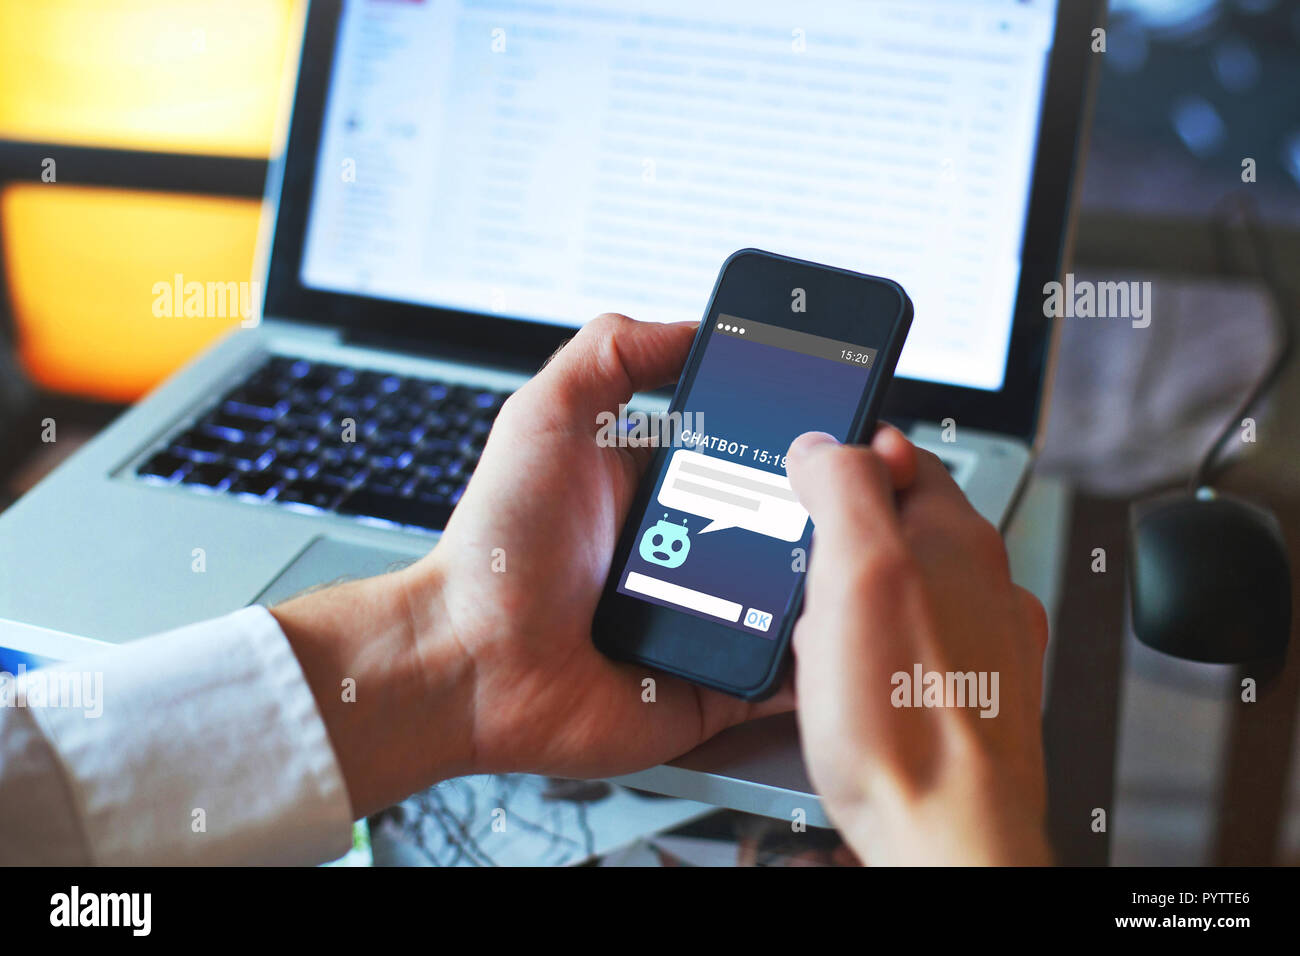 chatbot concept, online assistance, chat robot answering questions of user on website - Stock Image